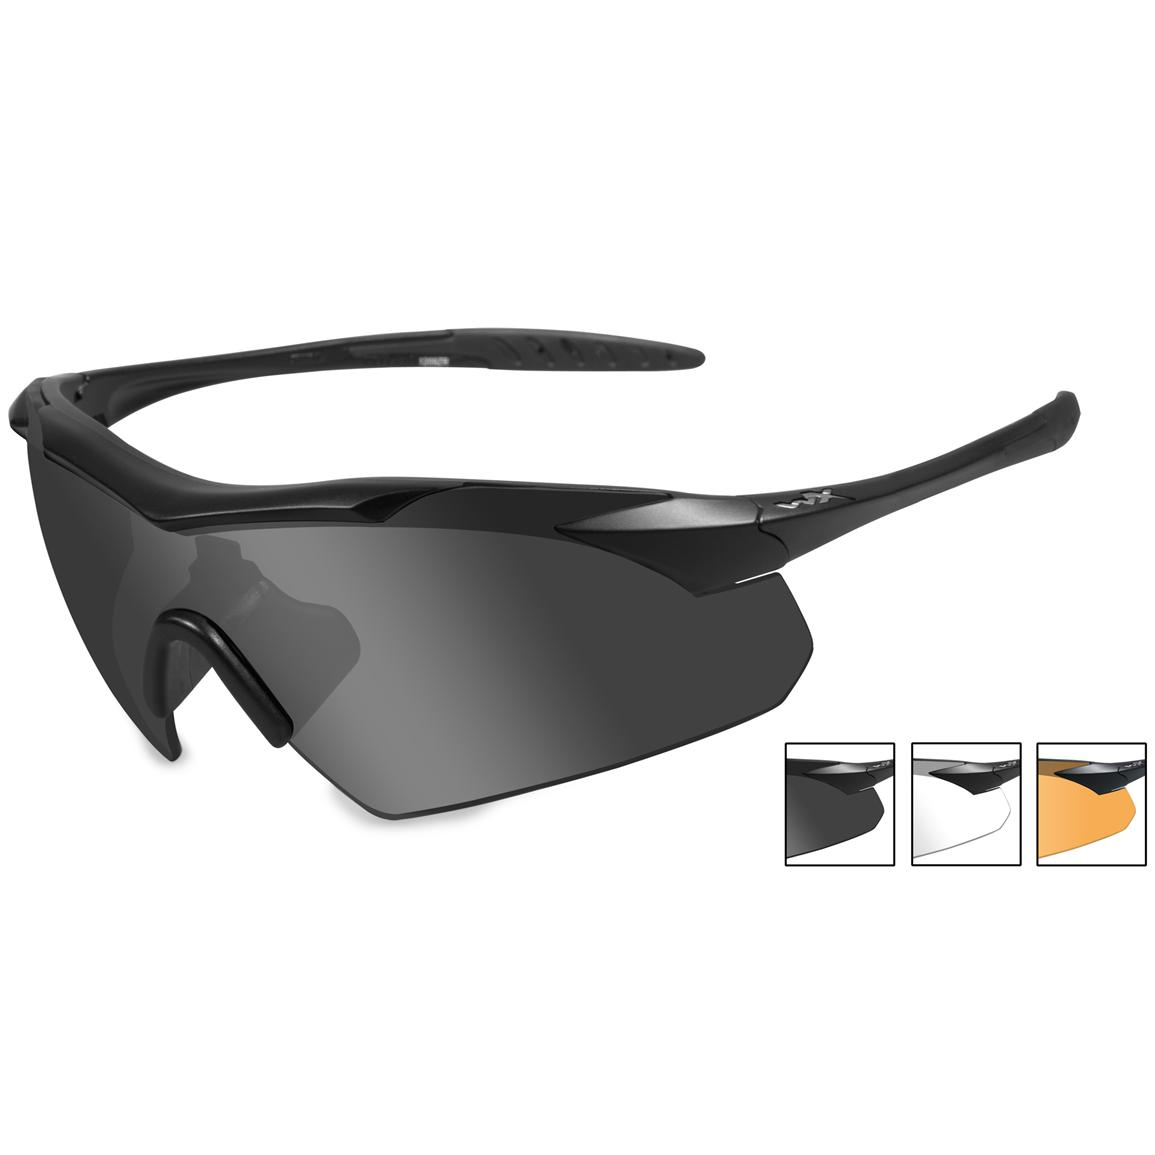 Wiley X WX Vapor Changeable 3-lens Sunglasses, Black Frame